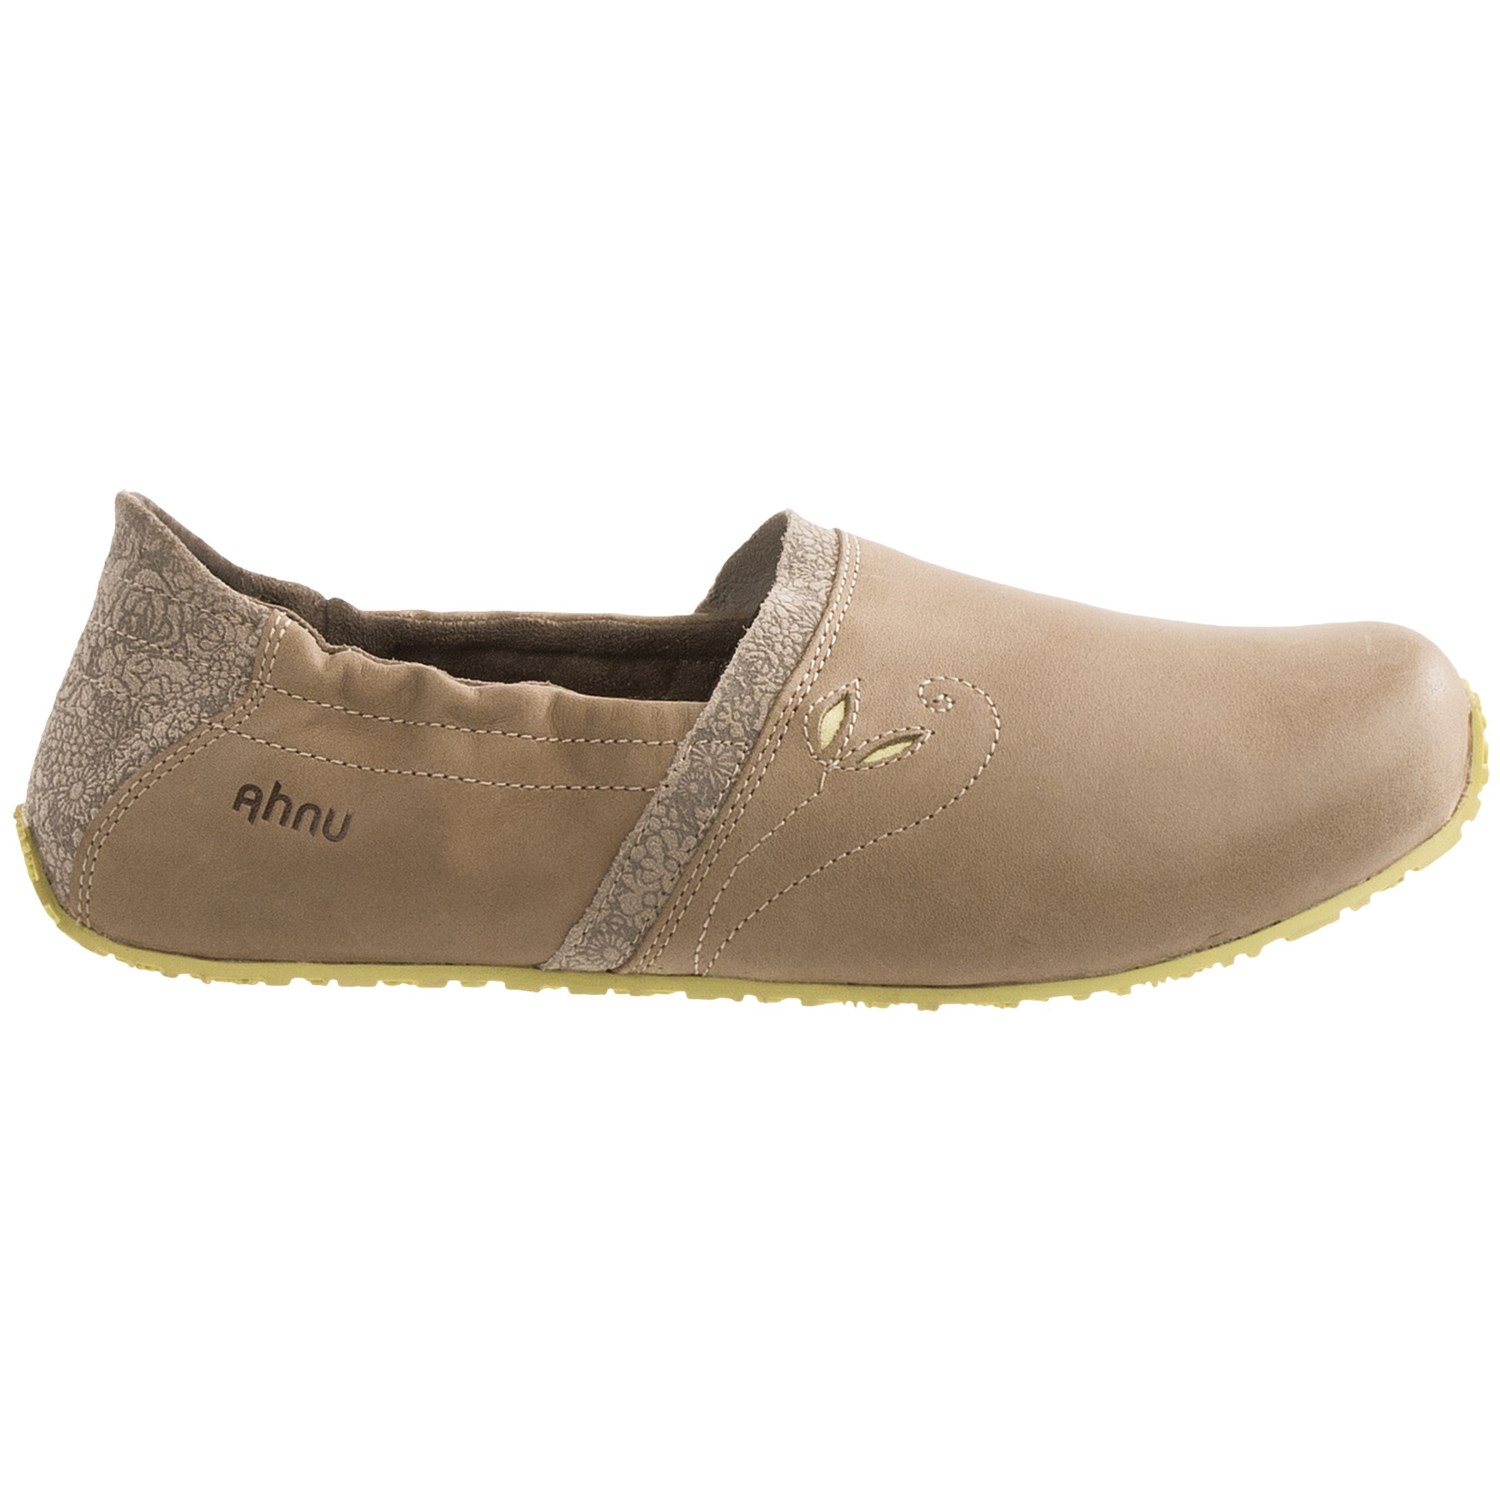 ahnu half moon shoes for save 53